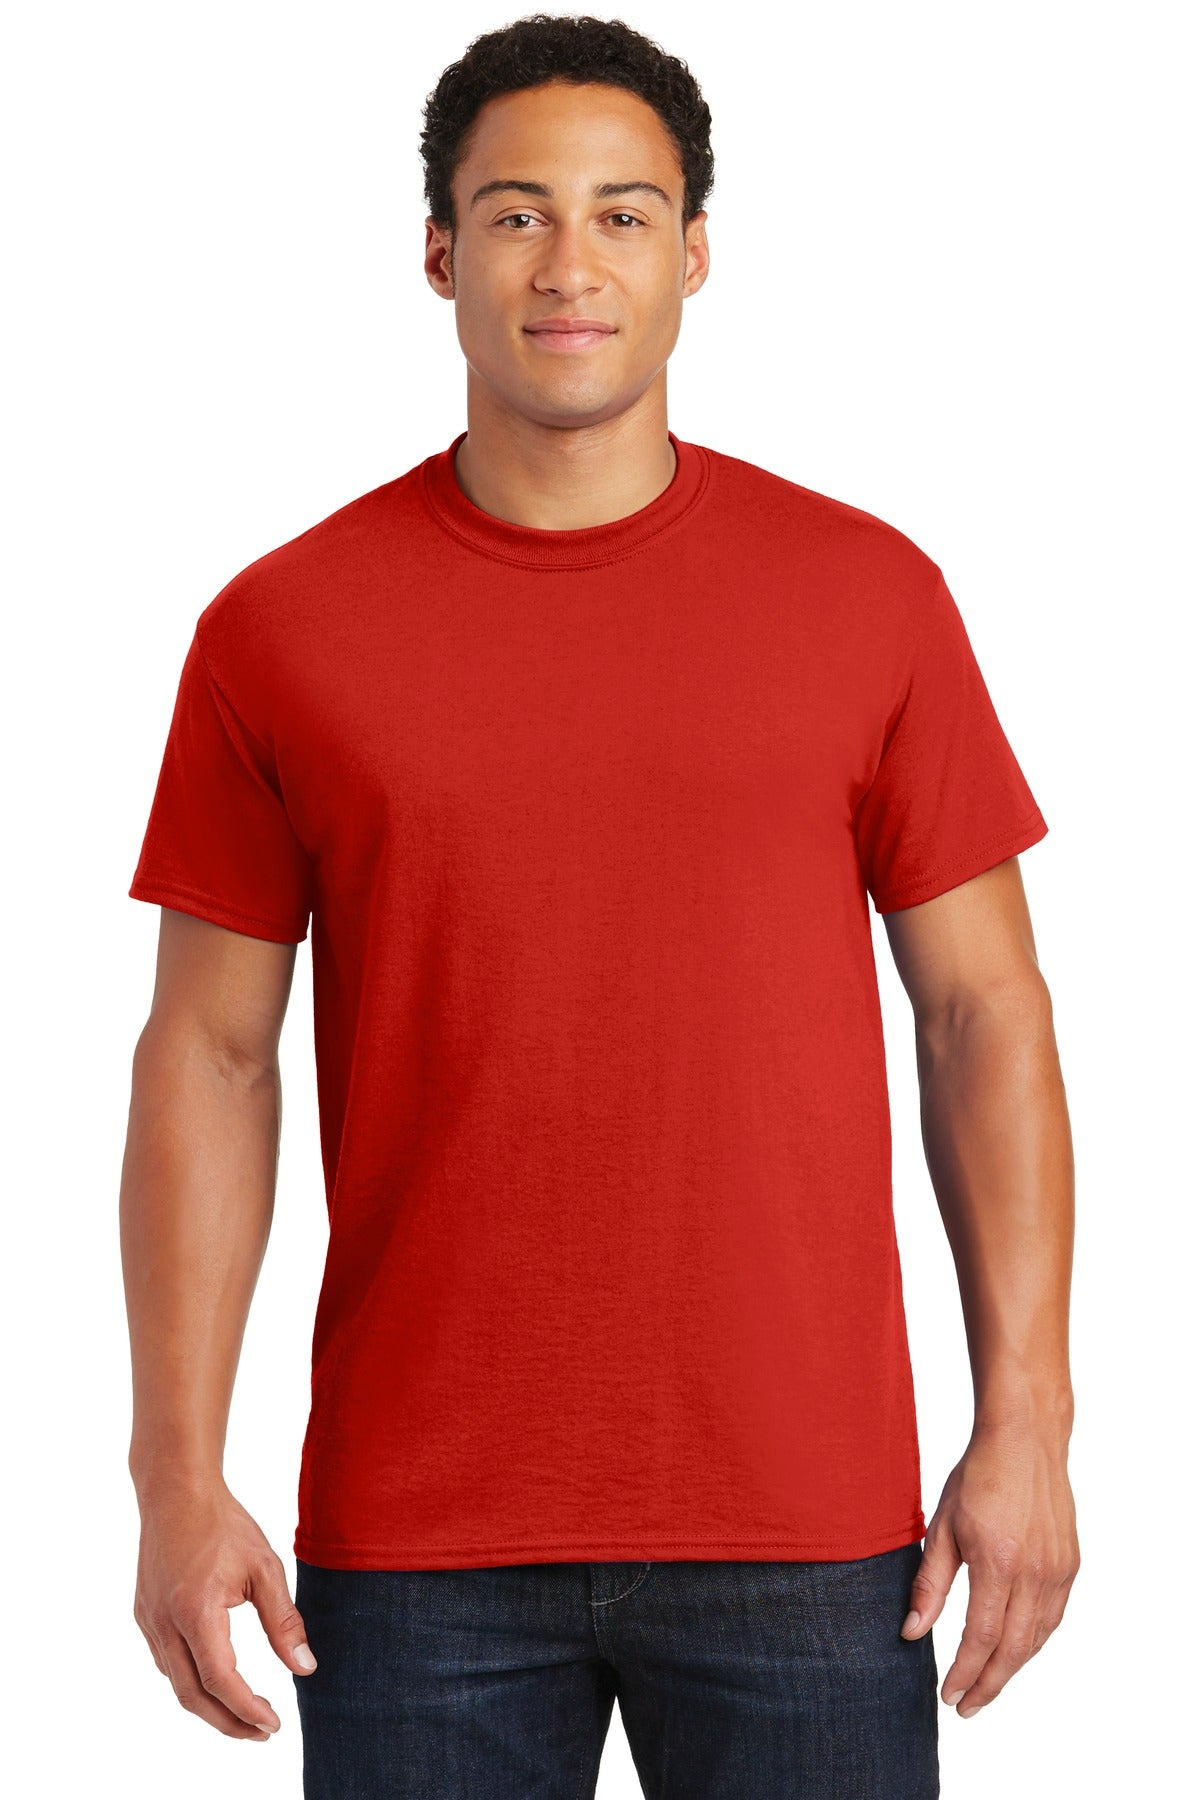 Red Gildan DryBlend 50 Cotton/50 Poly T-Shirt.